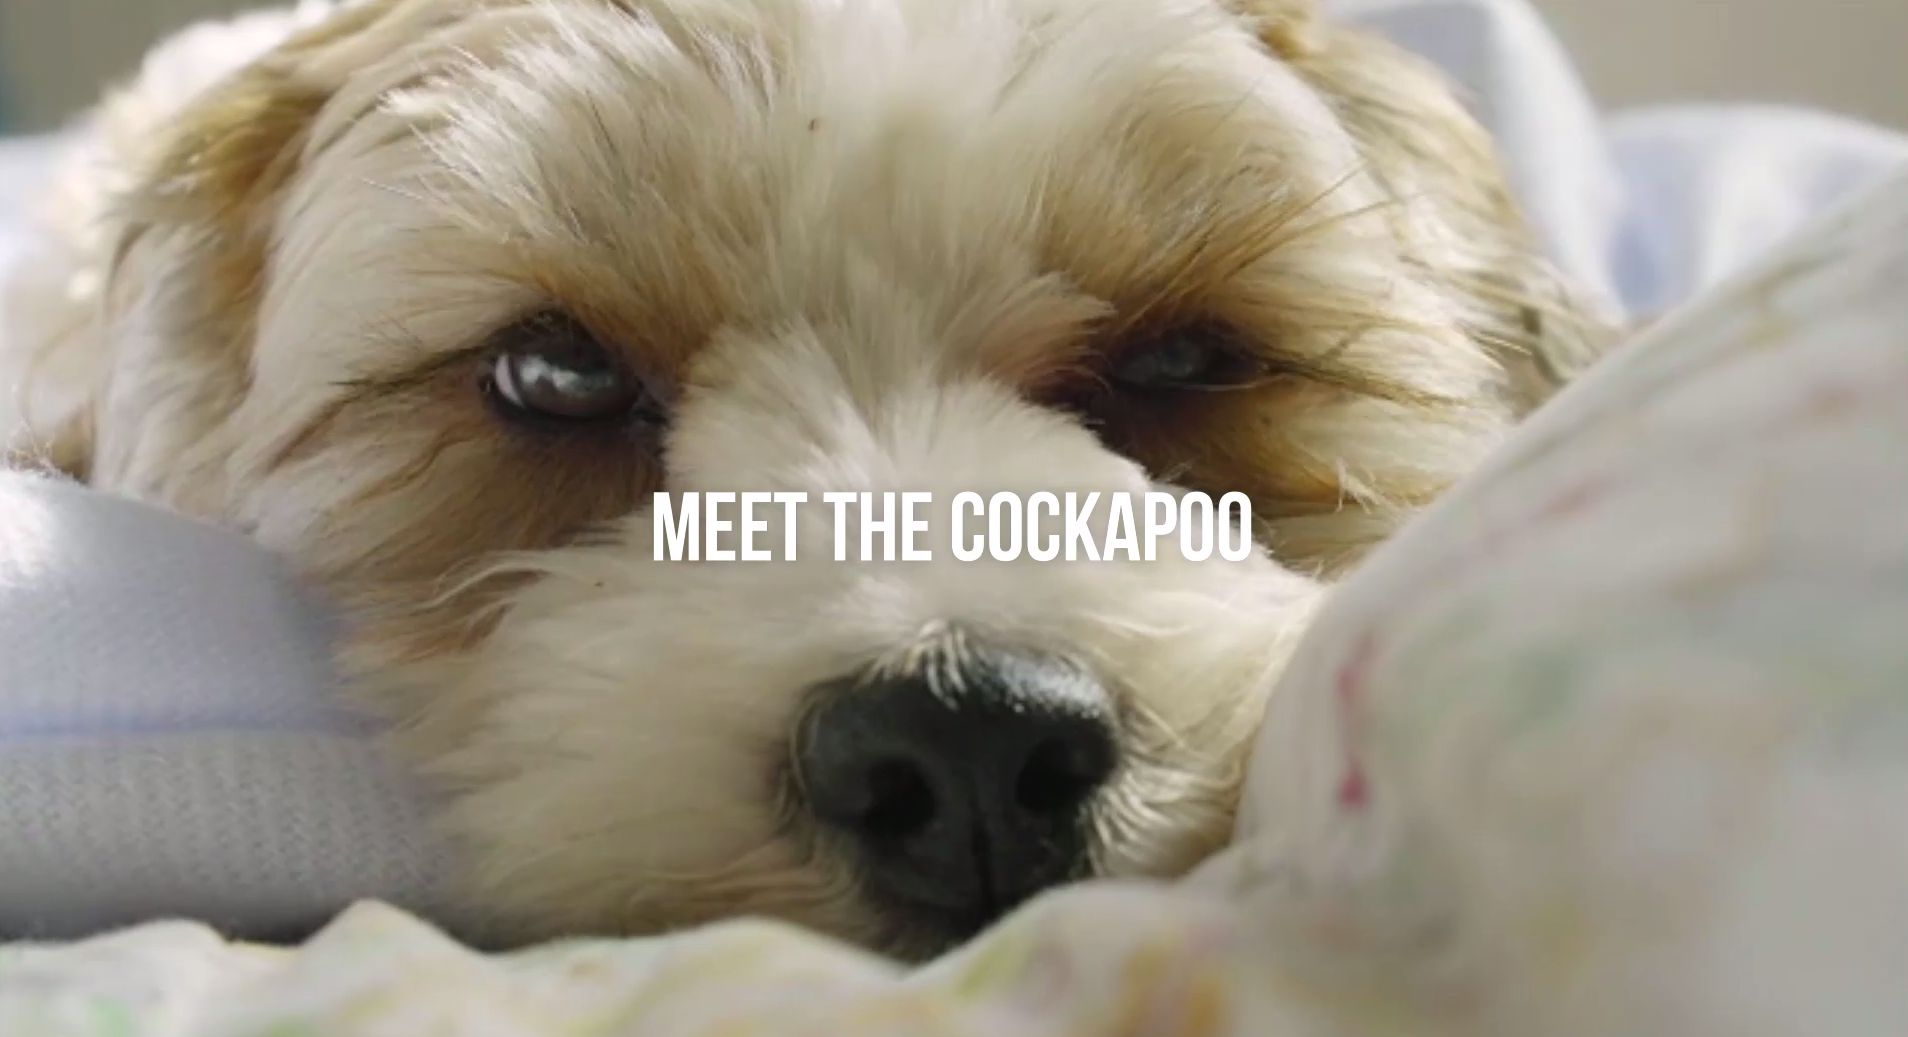 Cockapoo Dog Breed Information, Pictures, Characteristics